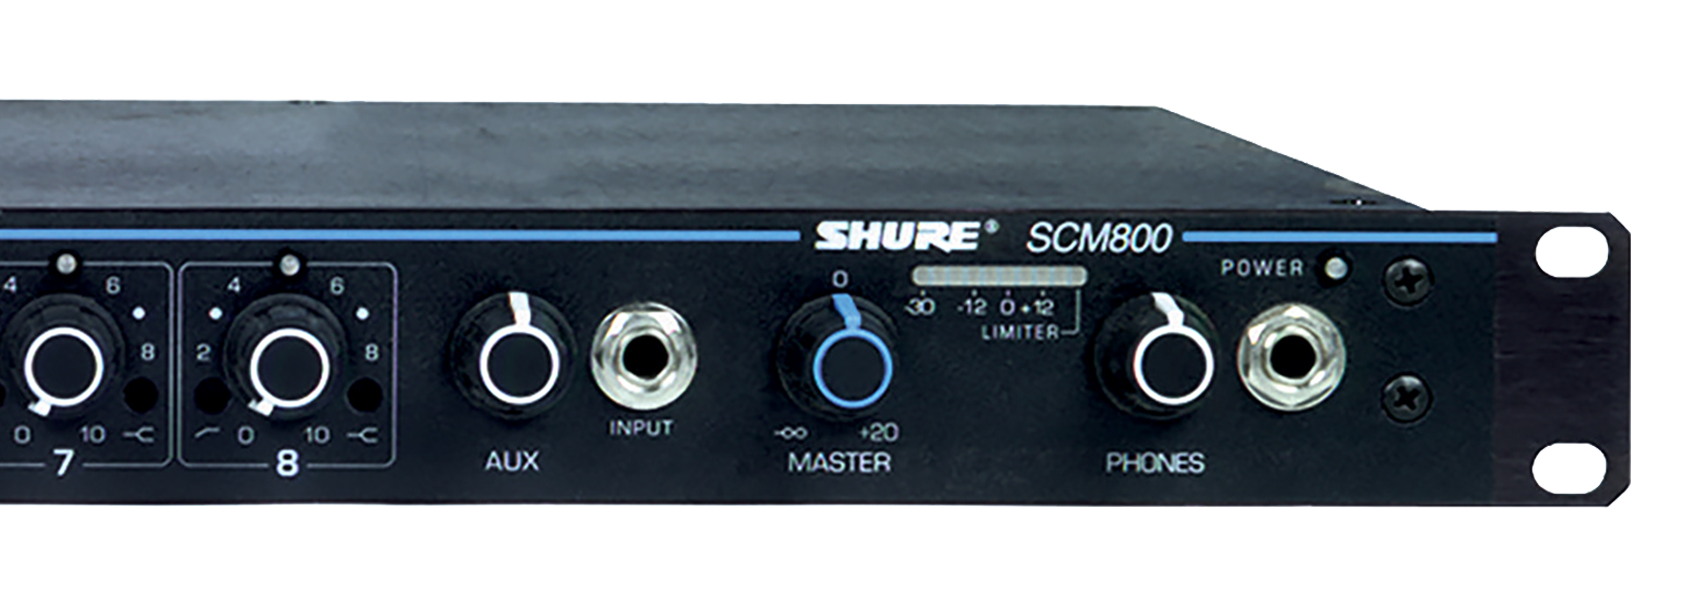 Illustration Shure SCM800 Eight Channel Microphone Mixer